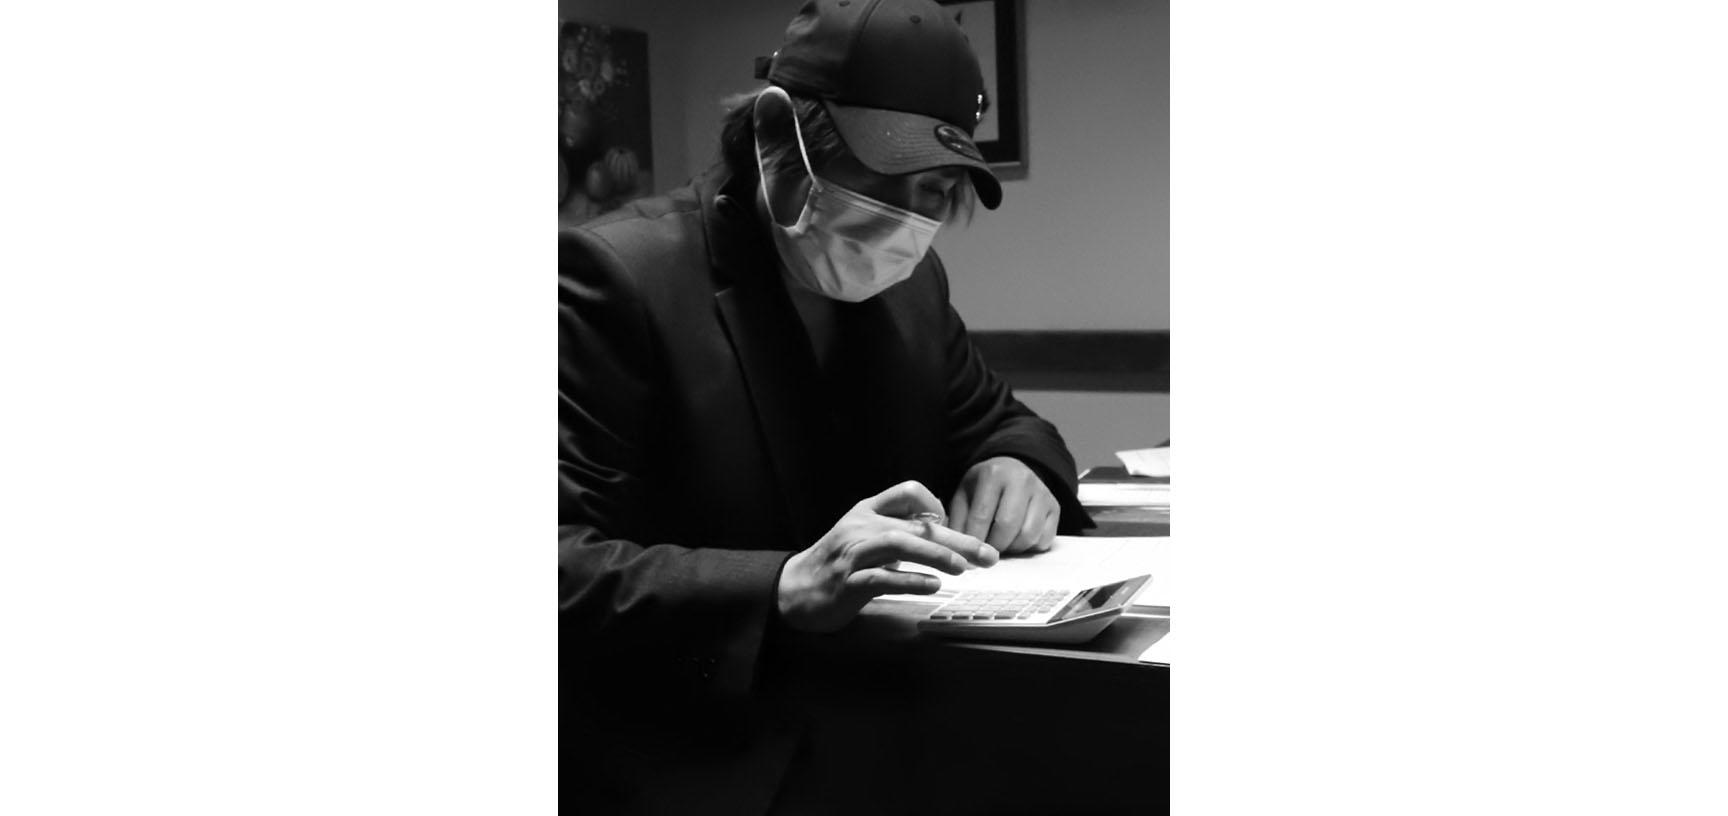 A black and white photograph of a man sitting at a table. He is about to write in a notebook. He wears a baseball cap on his head and a face mask across his mouth.